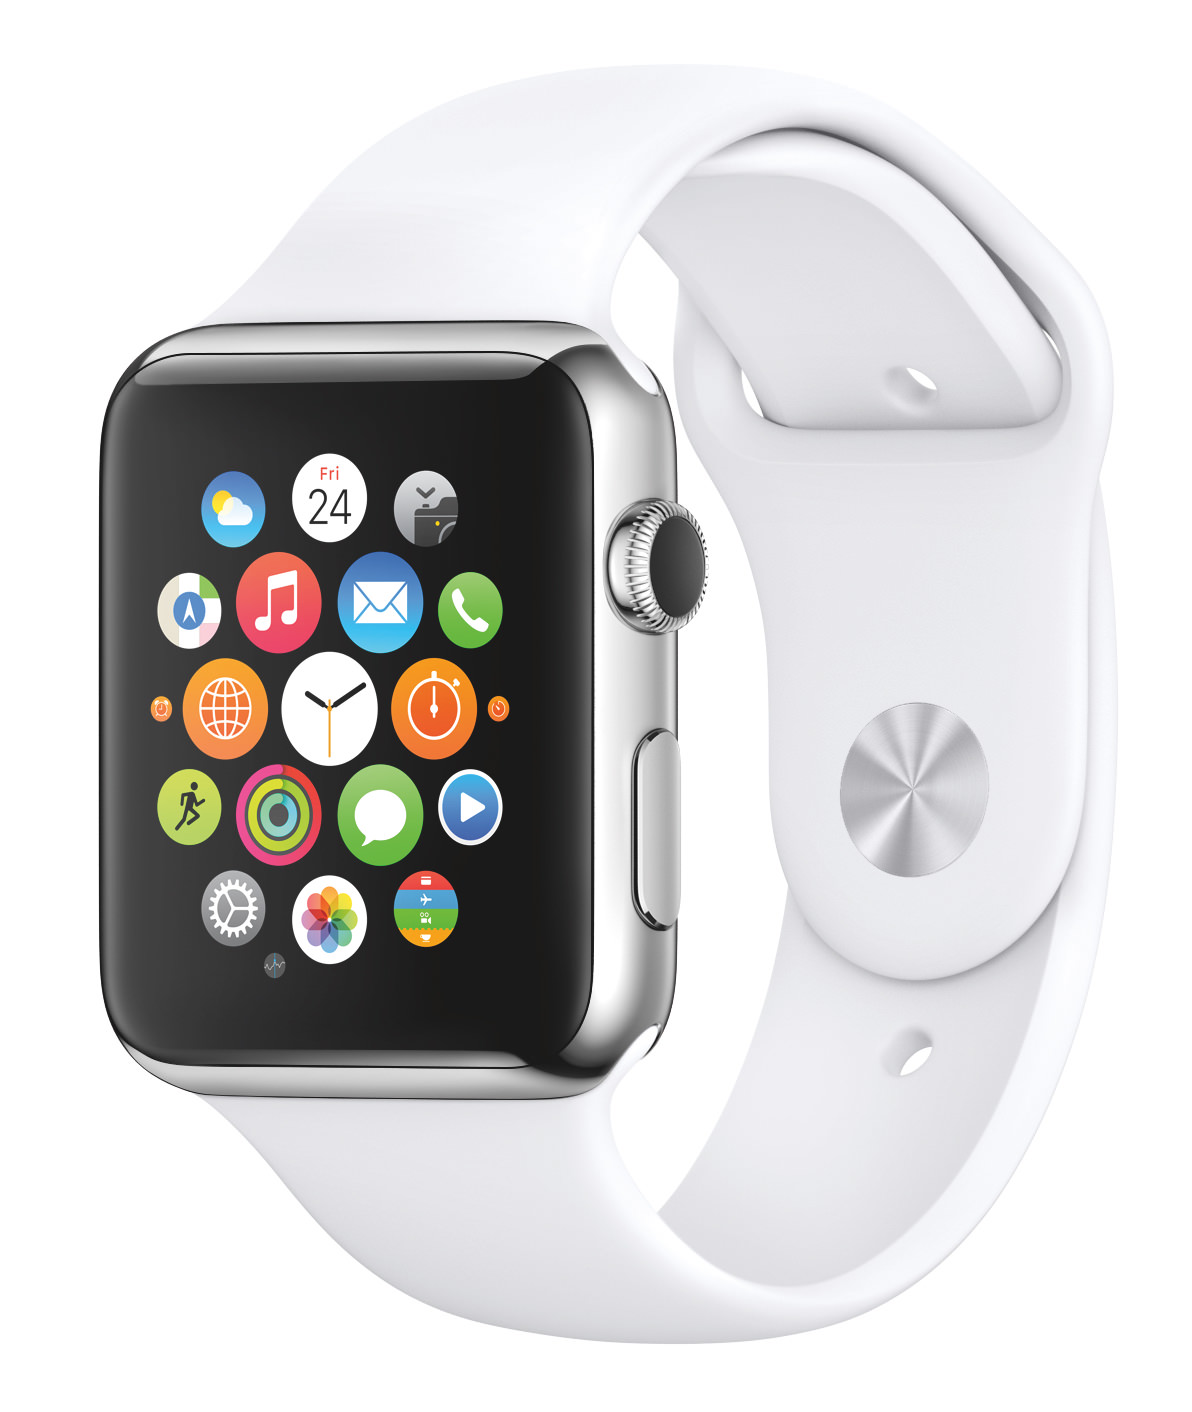 Apple Watch Blanche.jpg